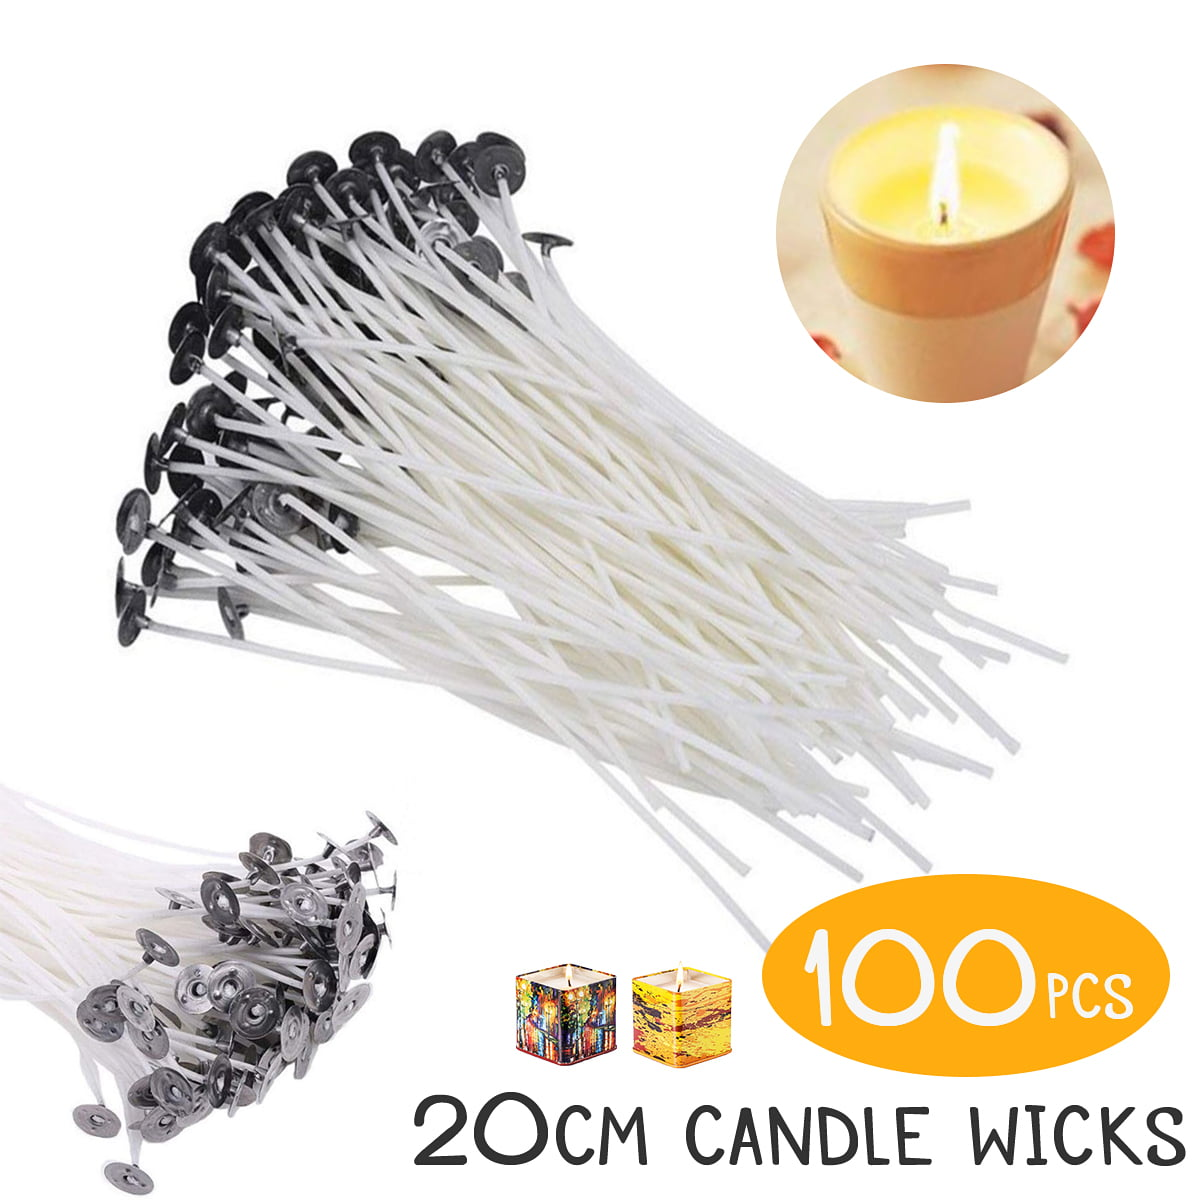 100 PCS Natural Low Smoke Candle Wicks Pre-Waxed Cotton Core Wicks Centering Device Pillar Candle Making and Candle DIY Wicks with 100 PCS Stickers and 1PC Centering Device Holder 6Inch